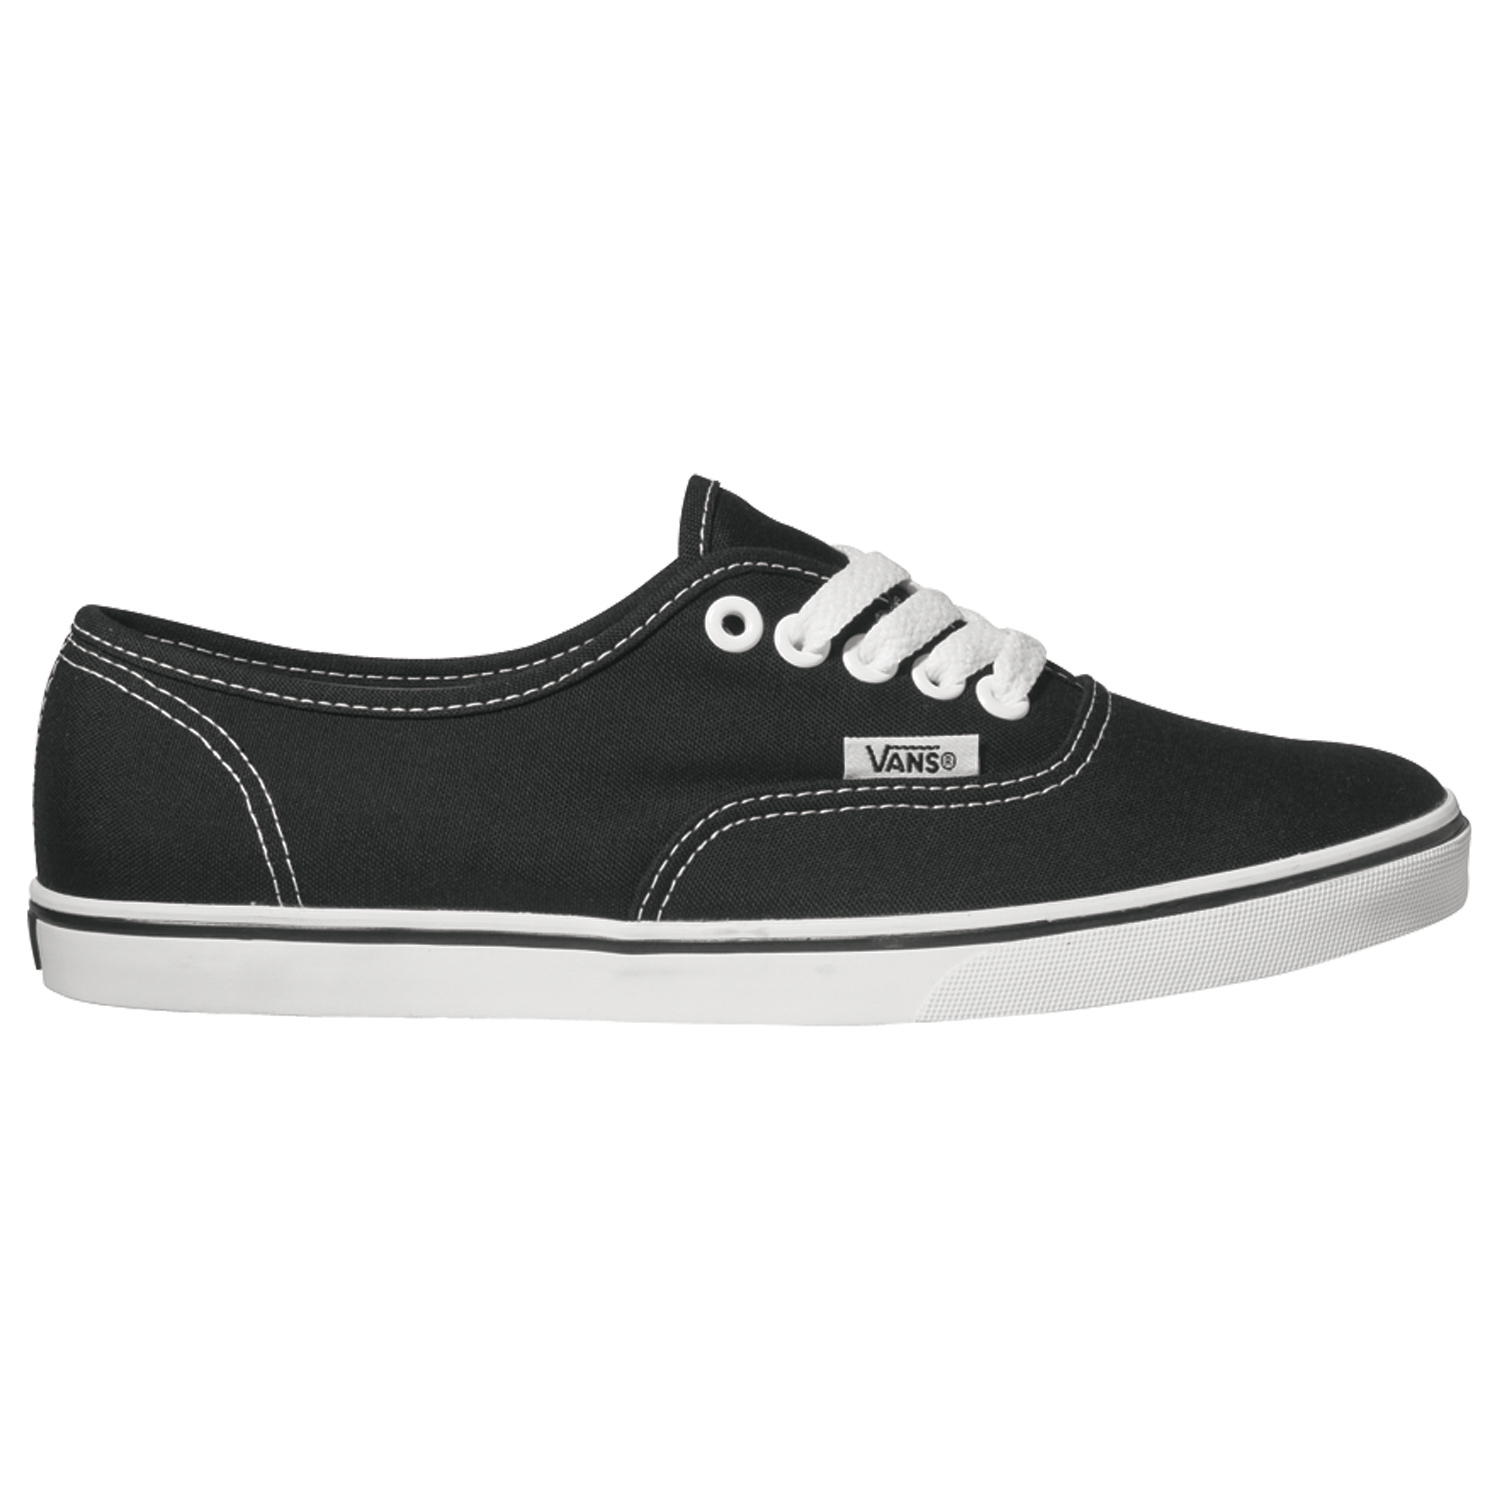 vans-authentic-lo-pro-black-true-white-99-90